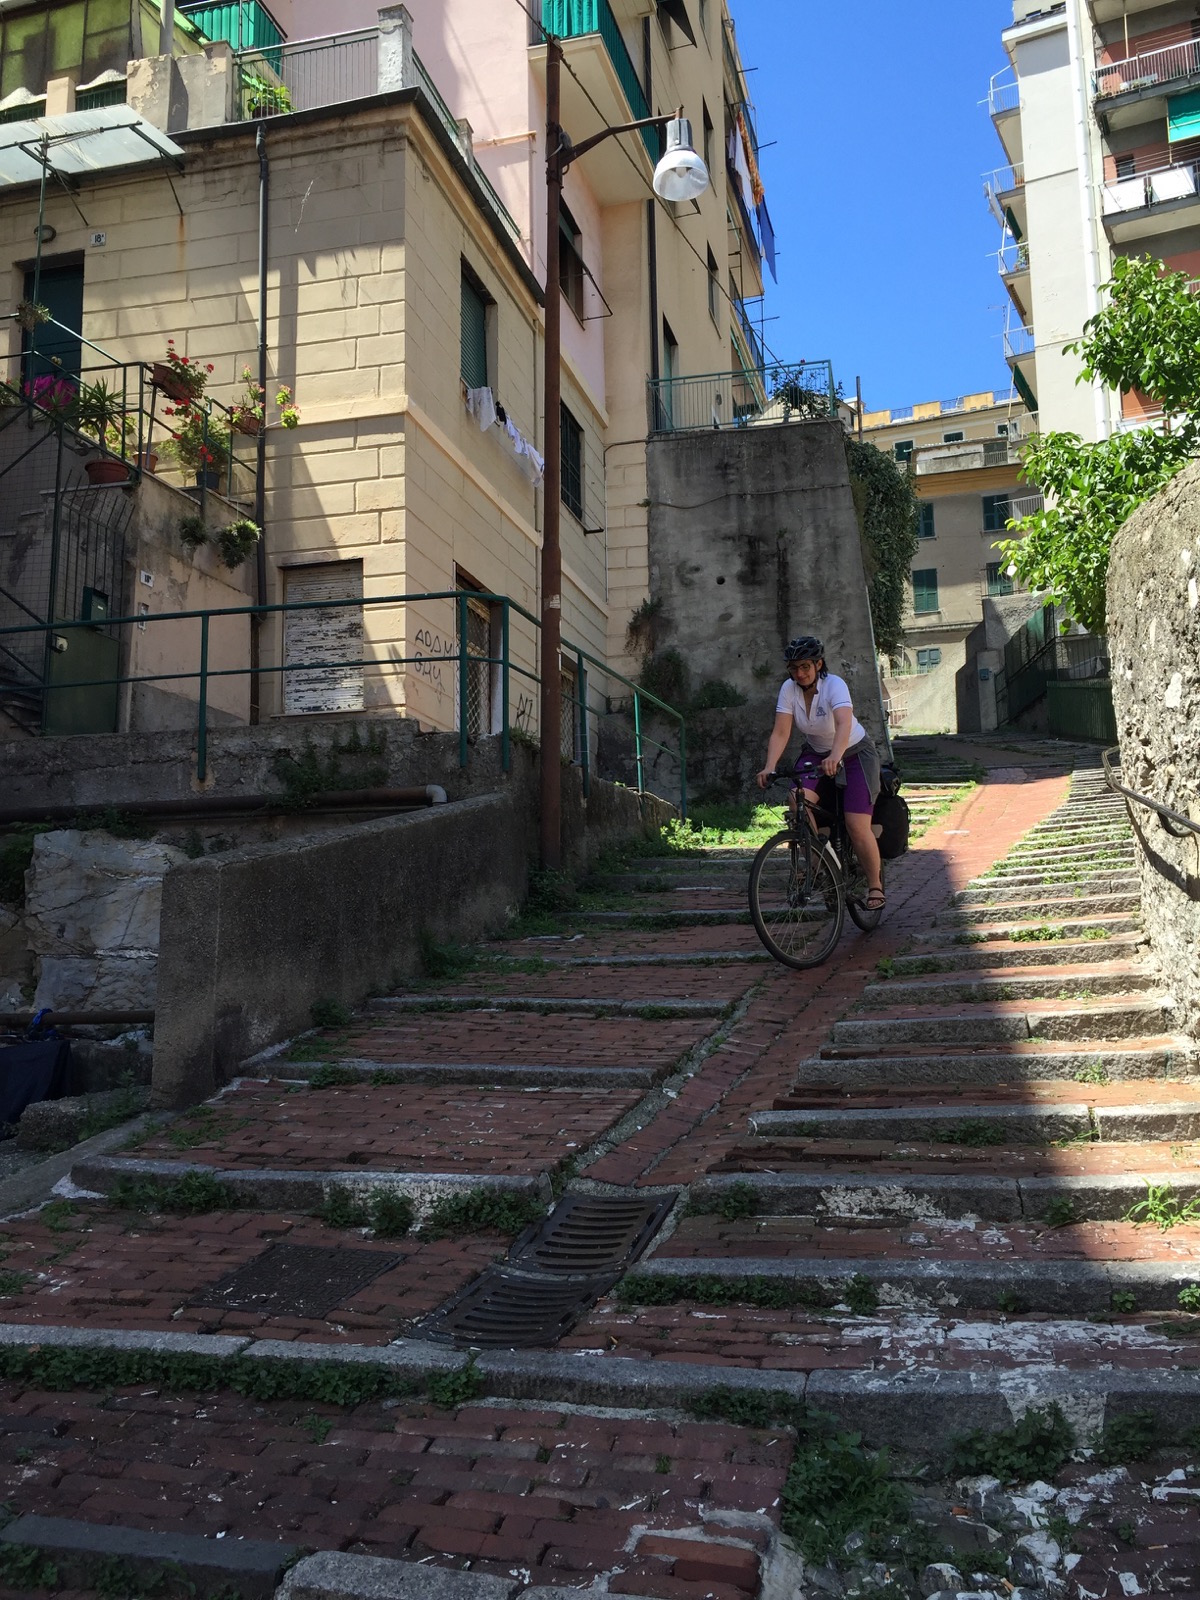 Cycling holiday: Milan to Rome